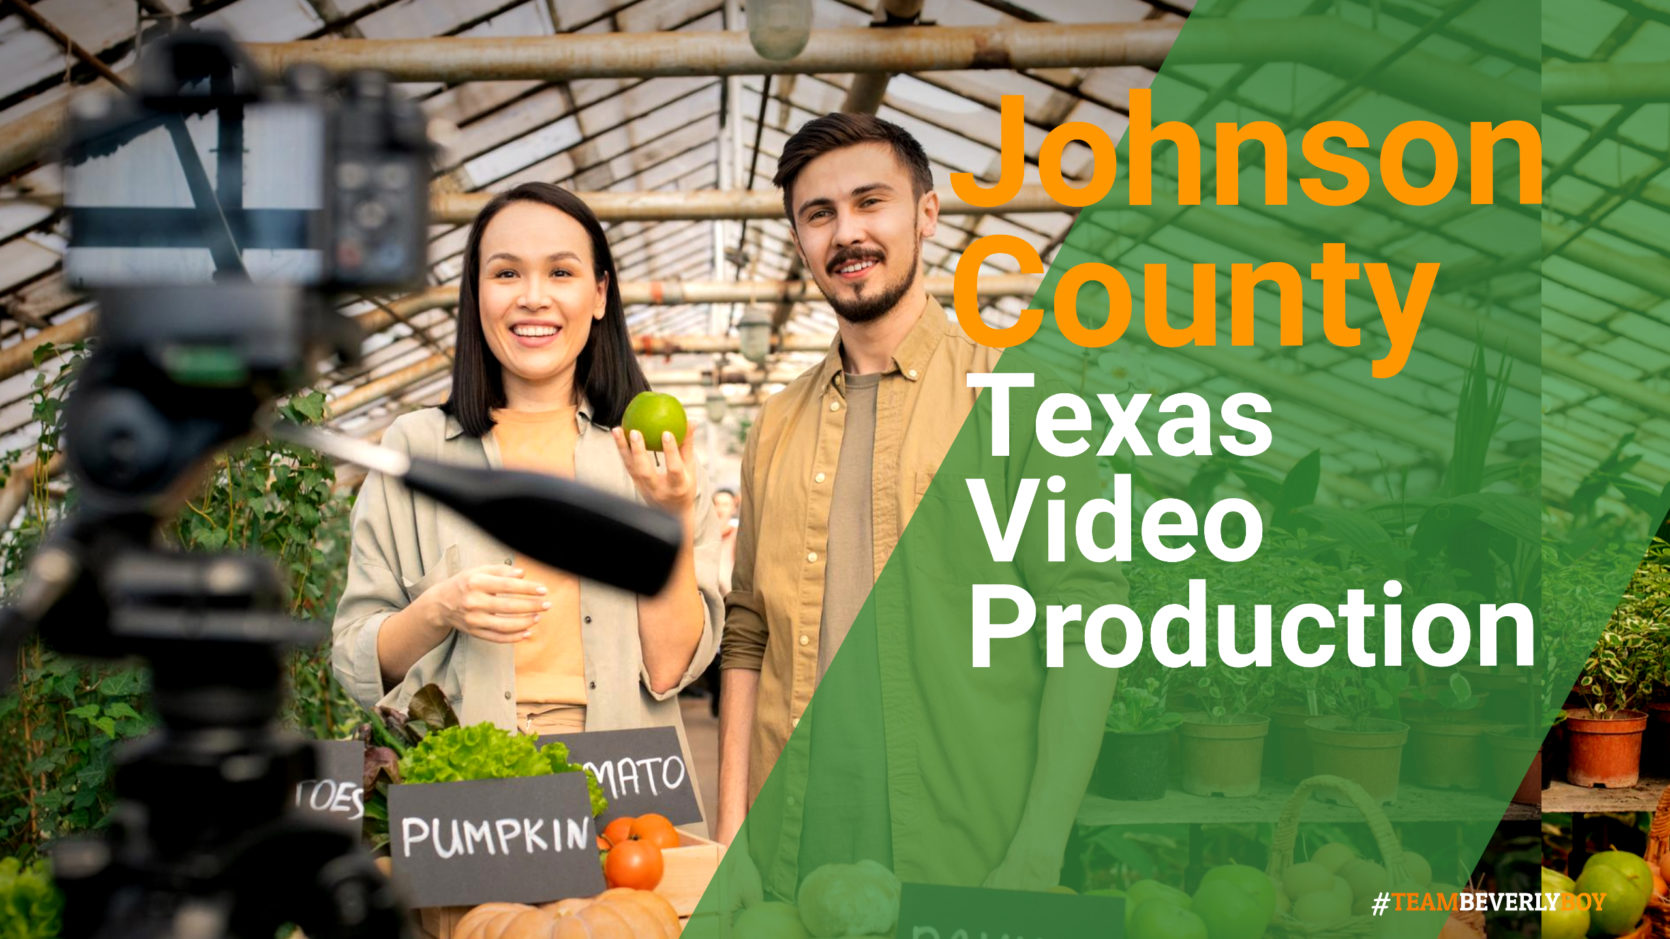 Johnson County TX Video Production